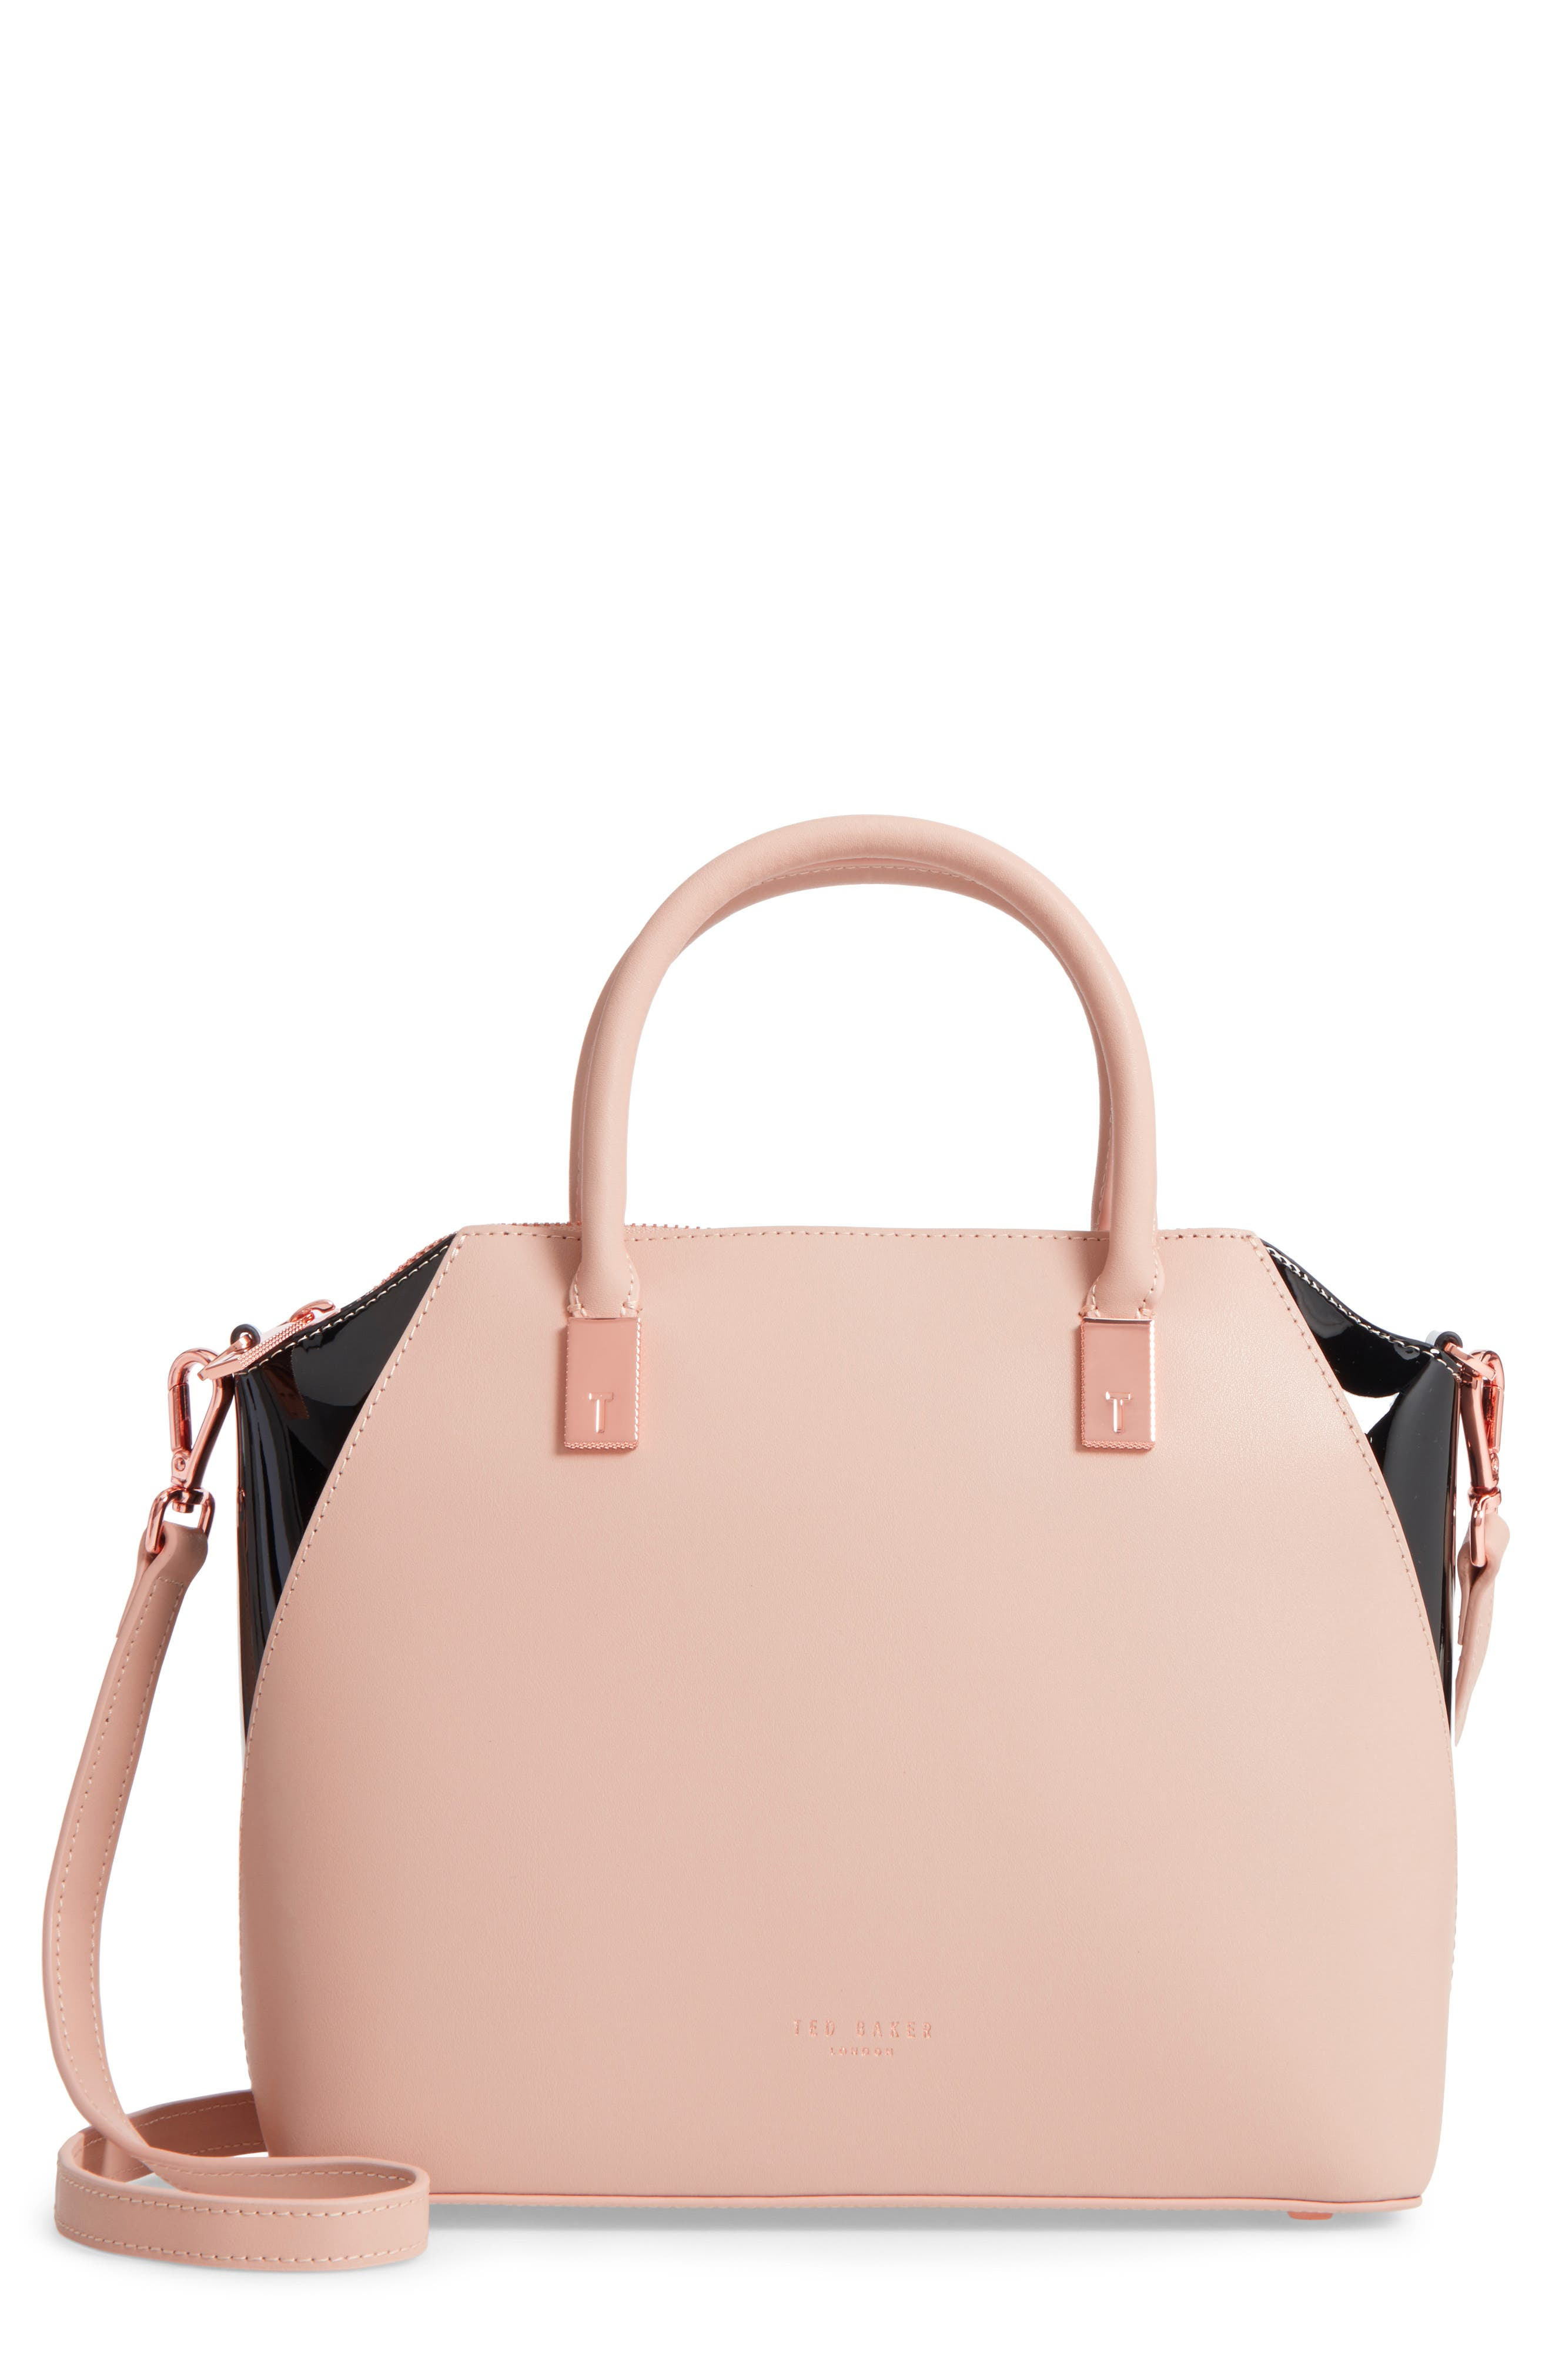 Ted Baker London Small Ashlee Leather Tote Bag